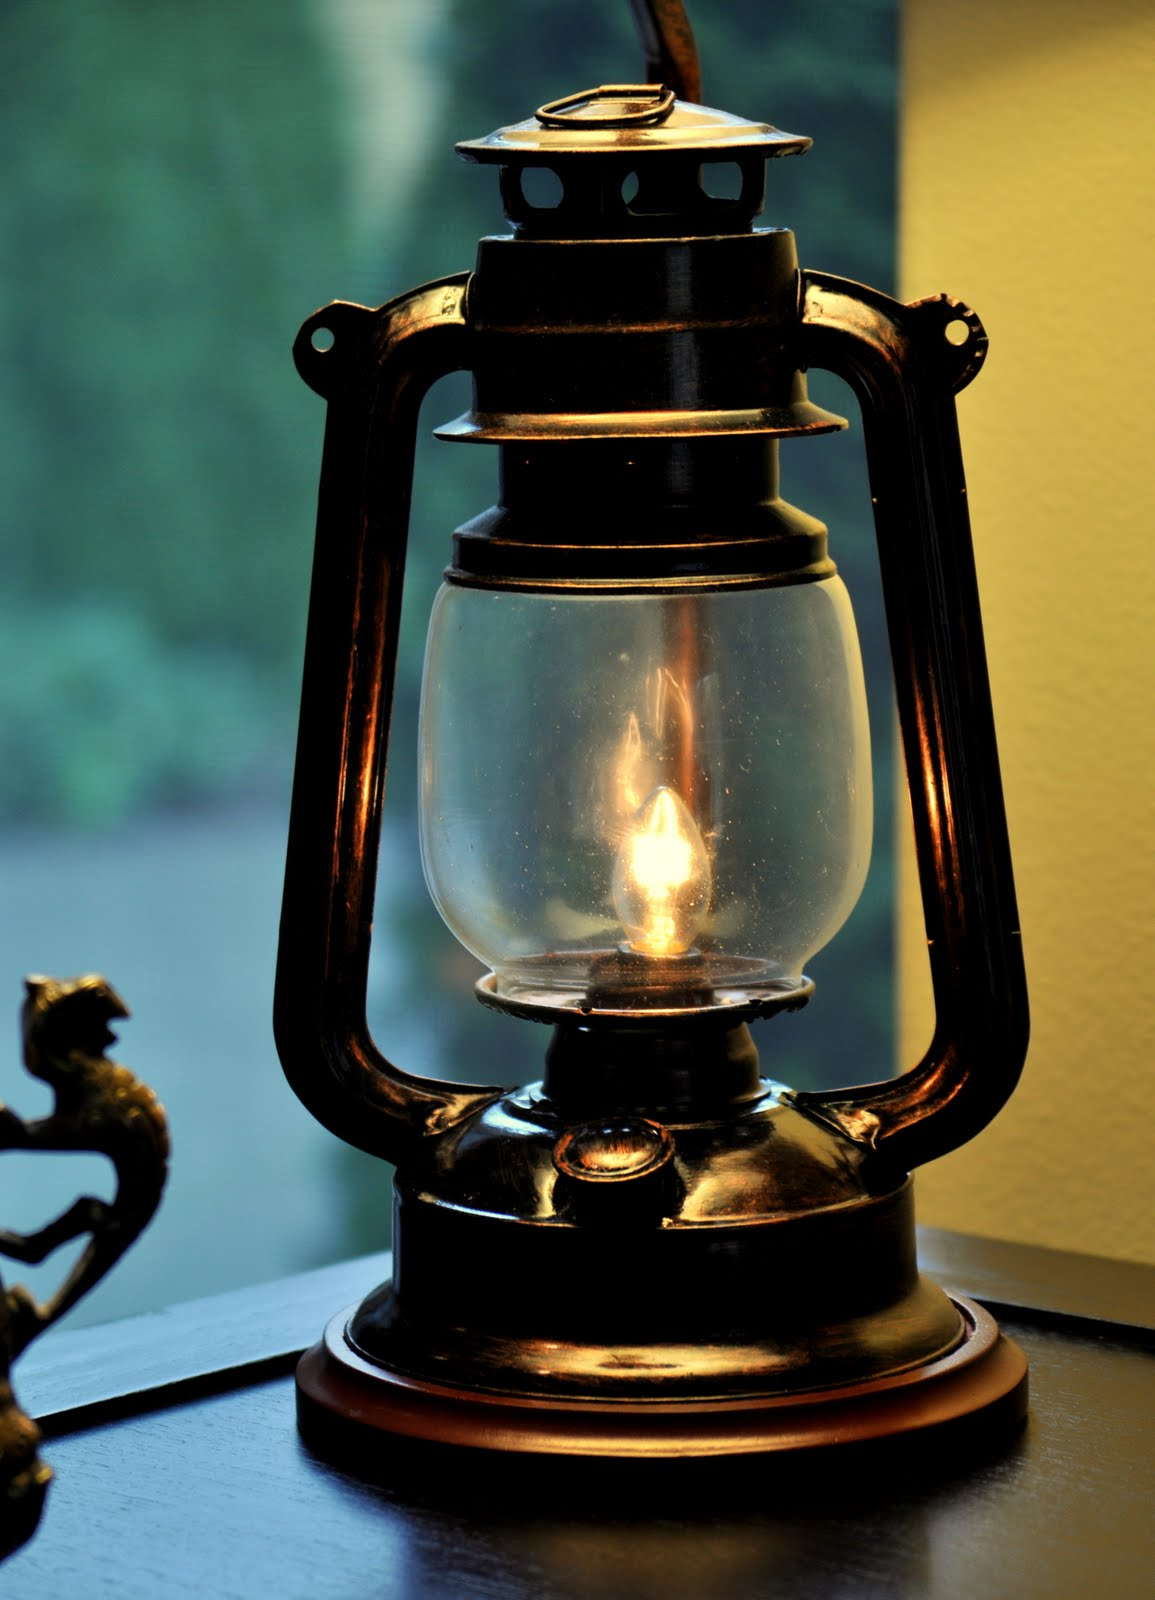 My Dream Canvas: Monday and a Lantern lamp